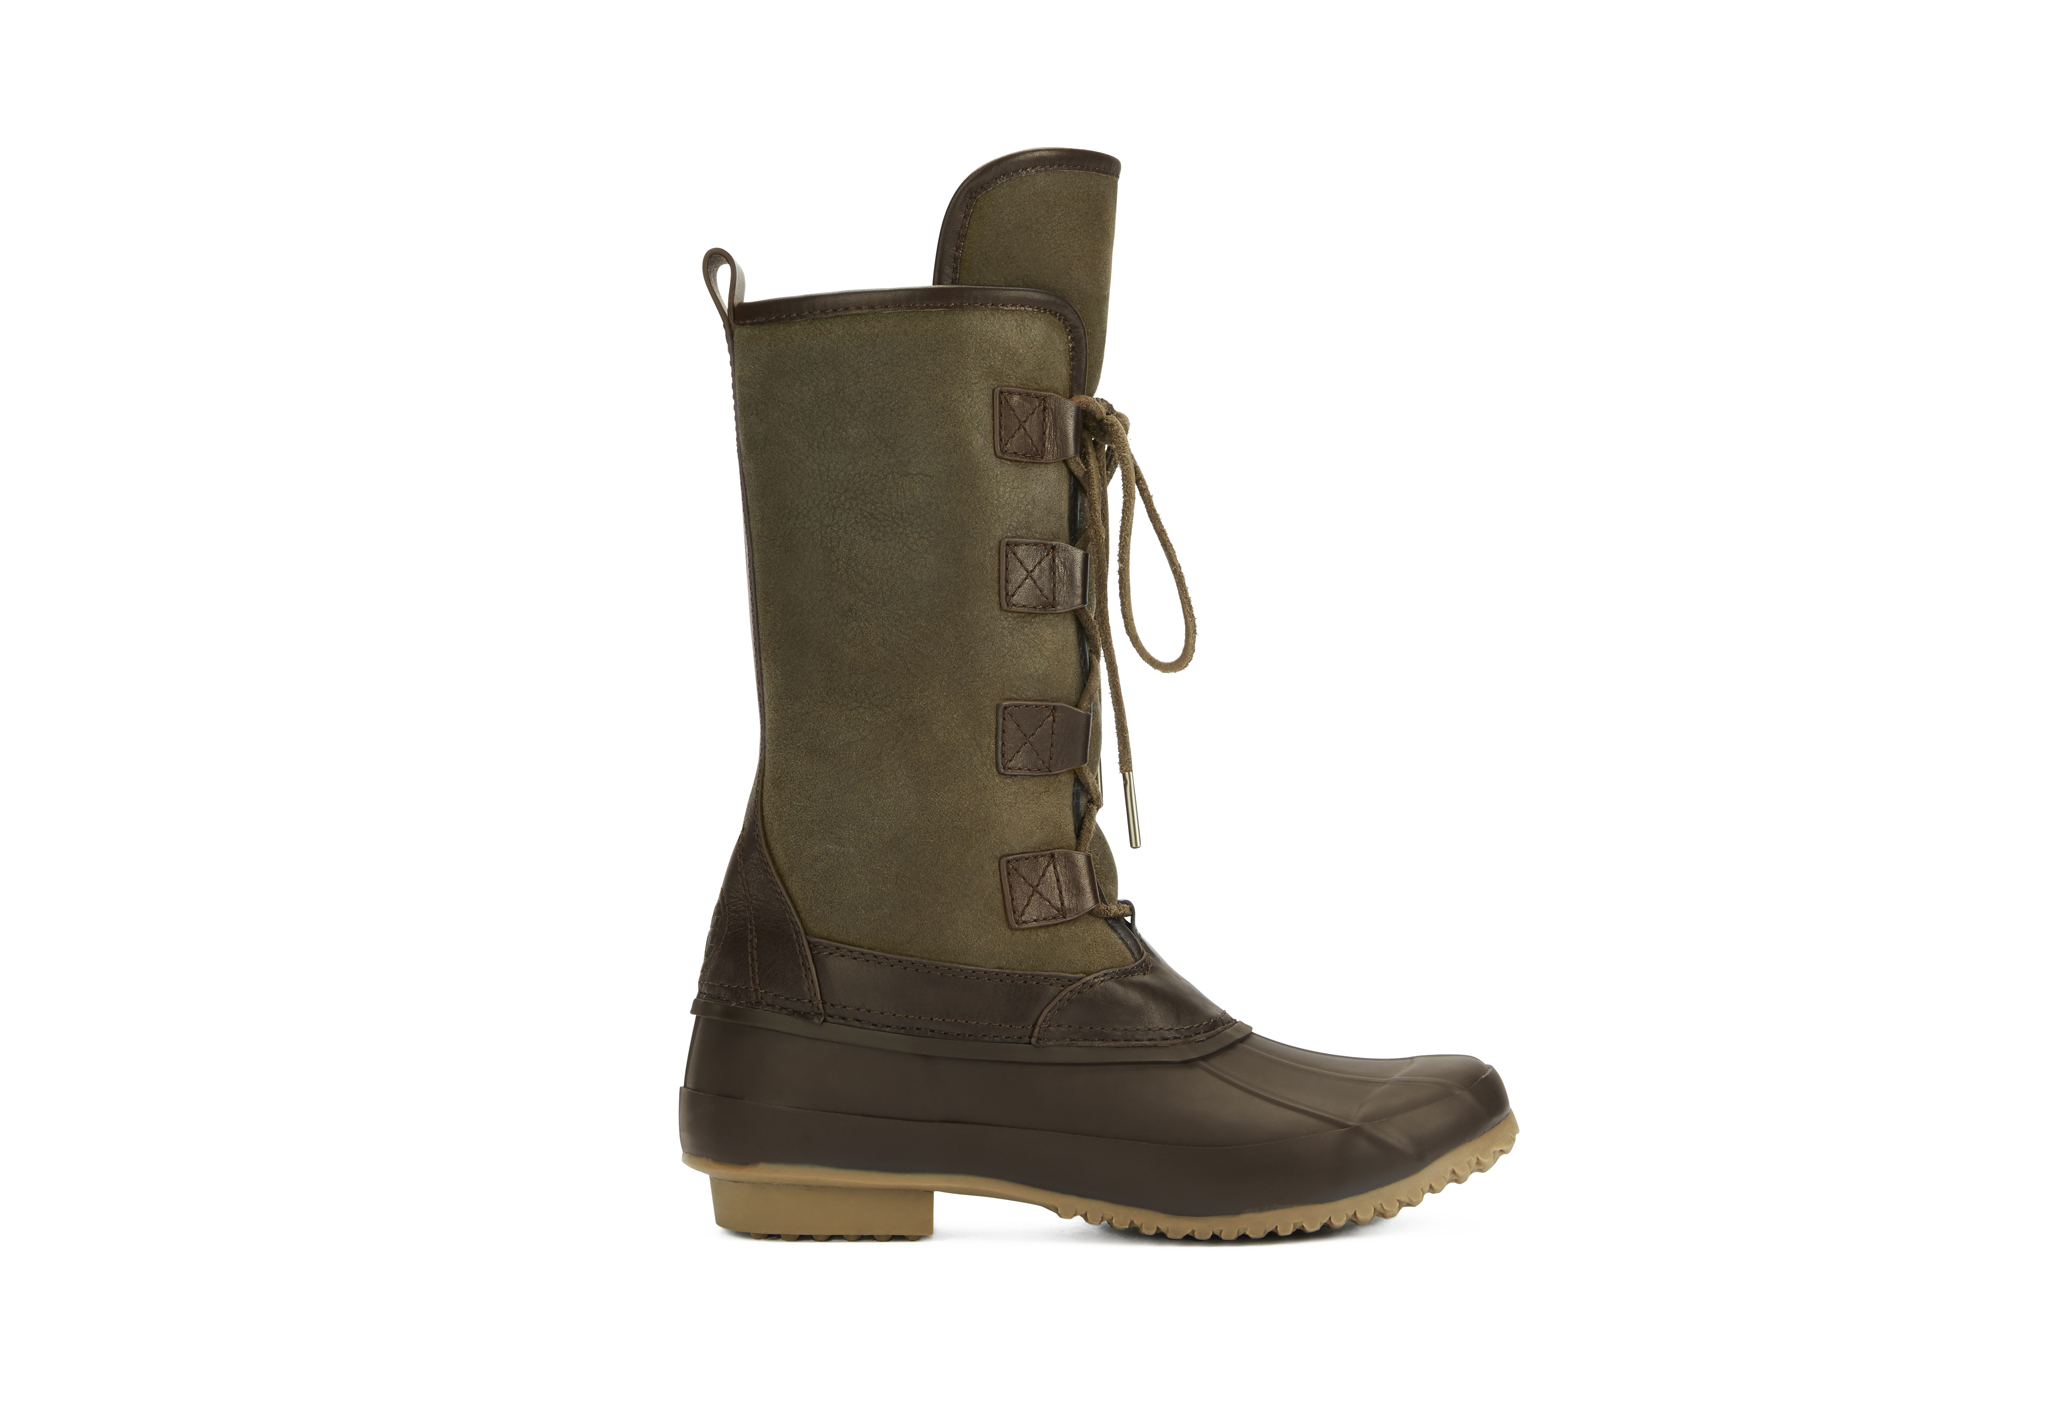 Tory Burch suede and rubber boot